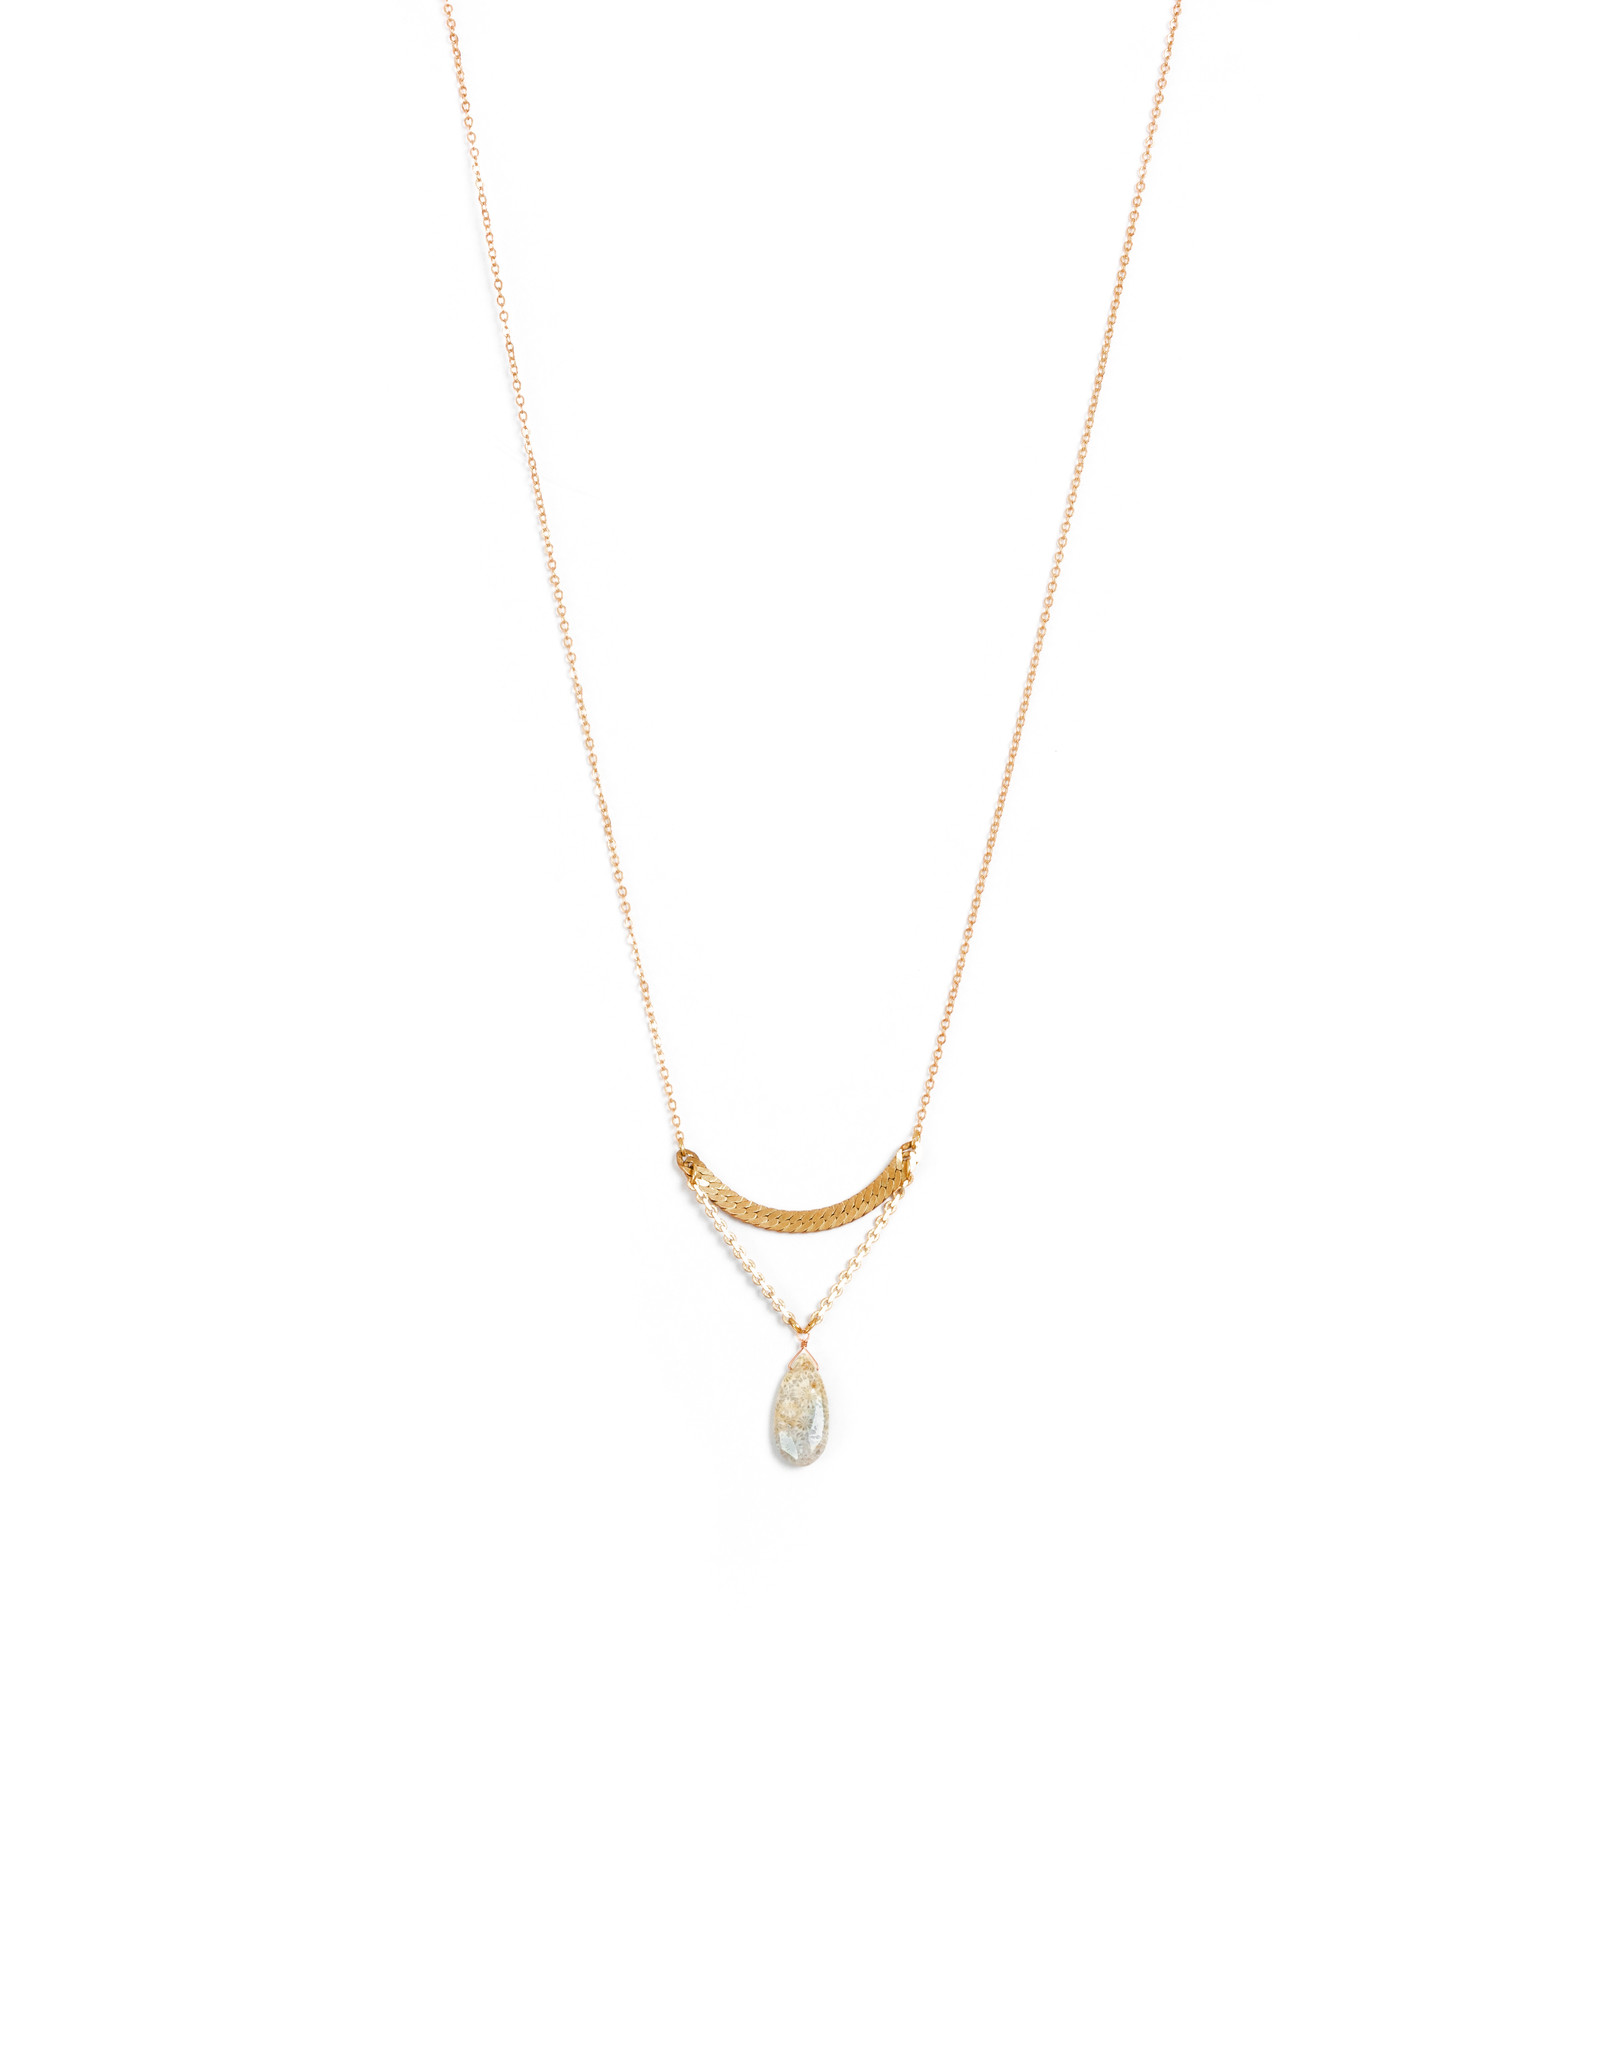 Hailey Gerrits Sima Necklace